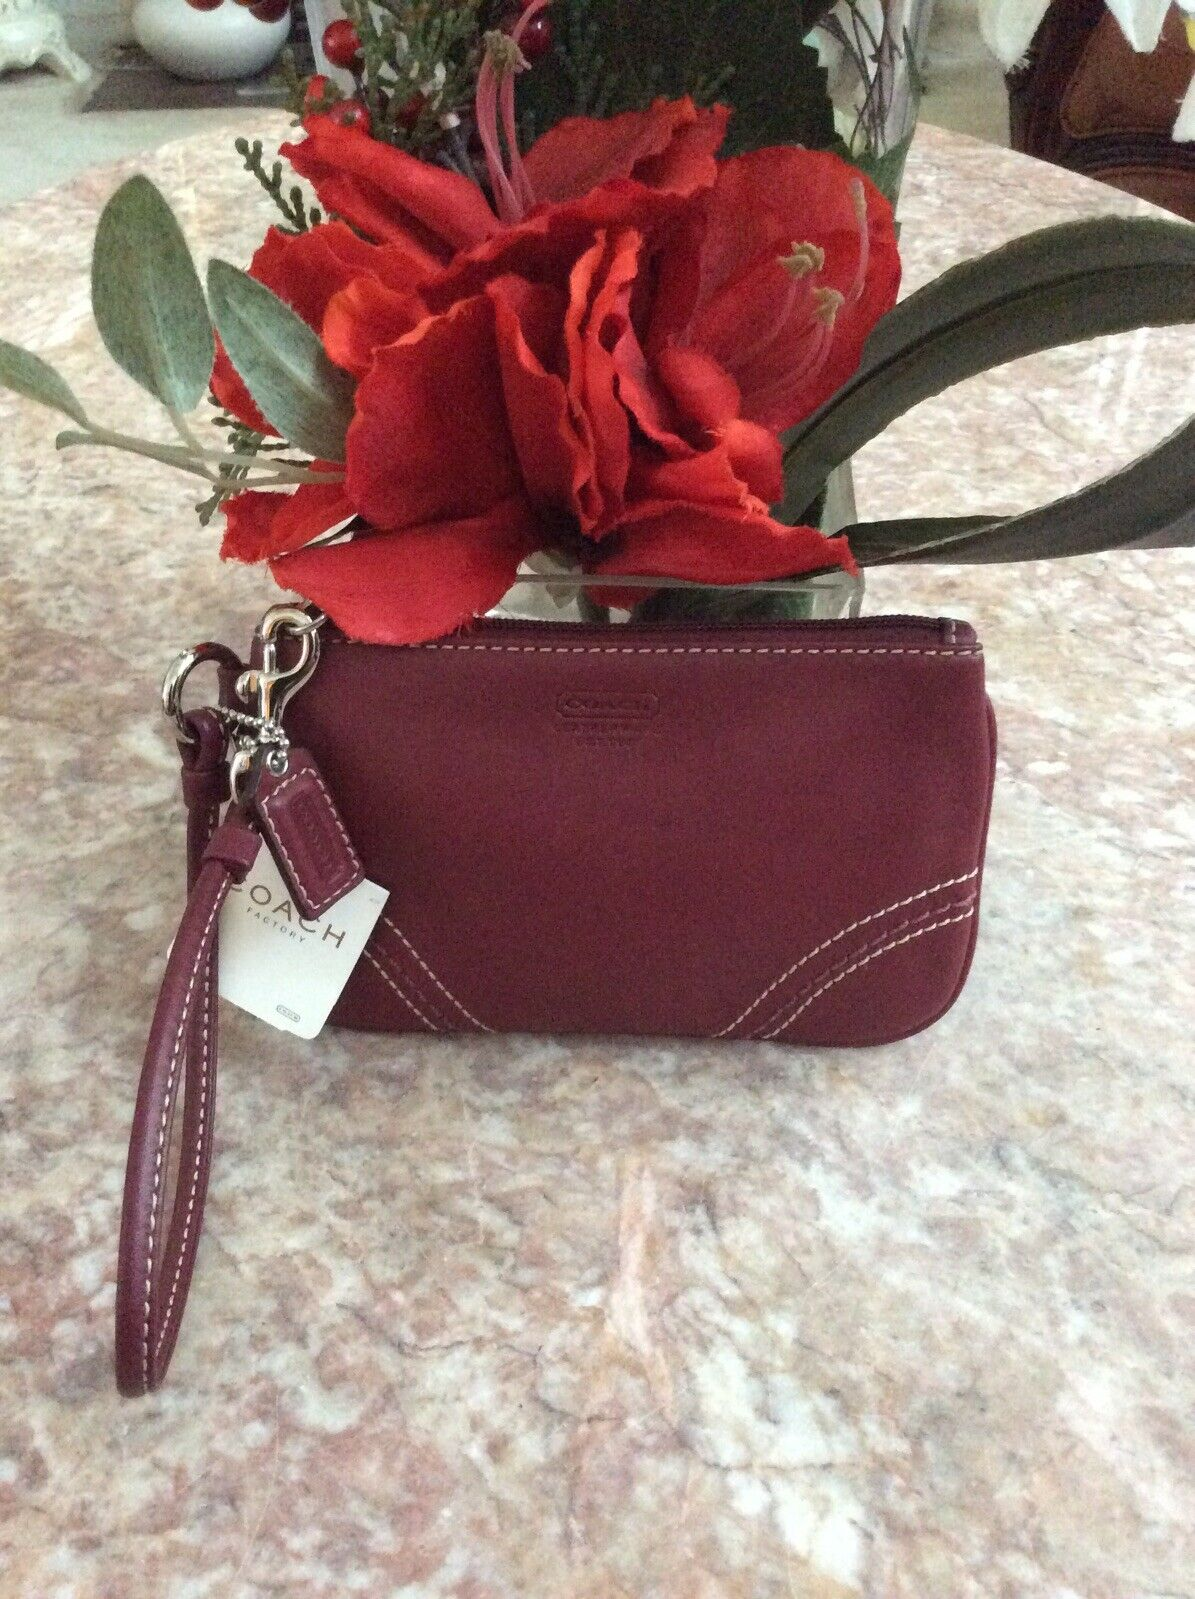 NWT Coach Berry Red Leather Small Wristlet F40575, Retail